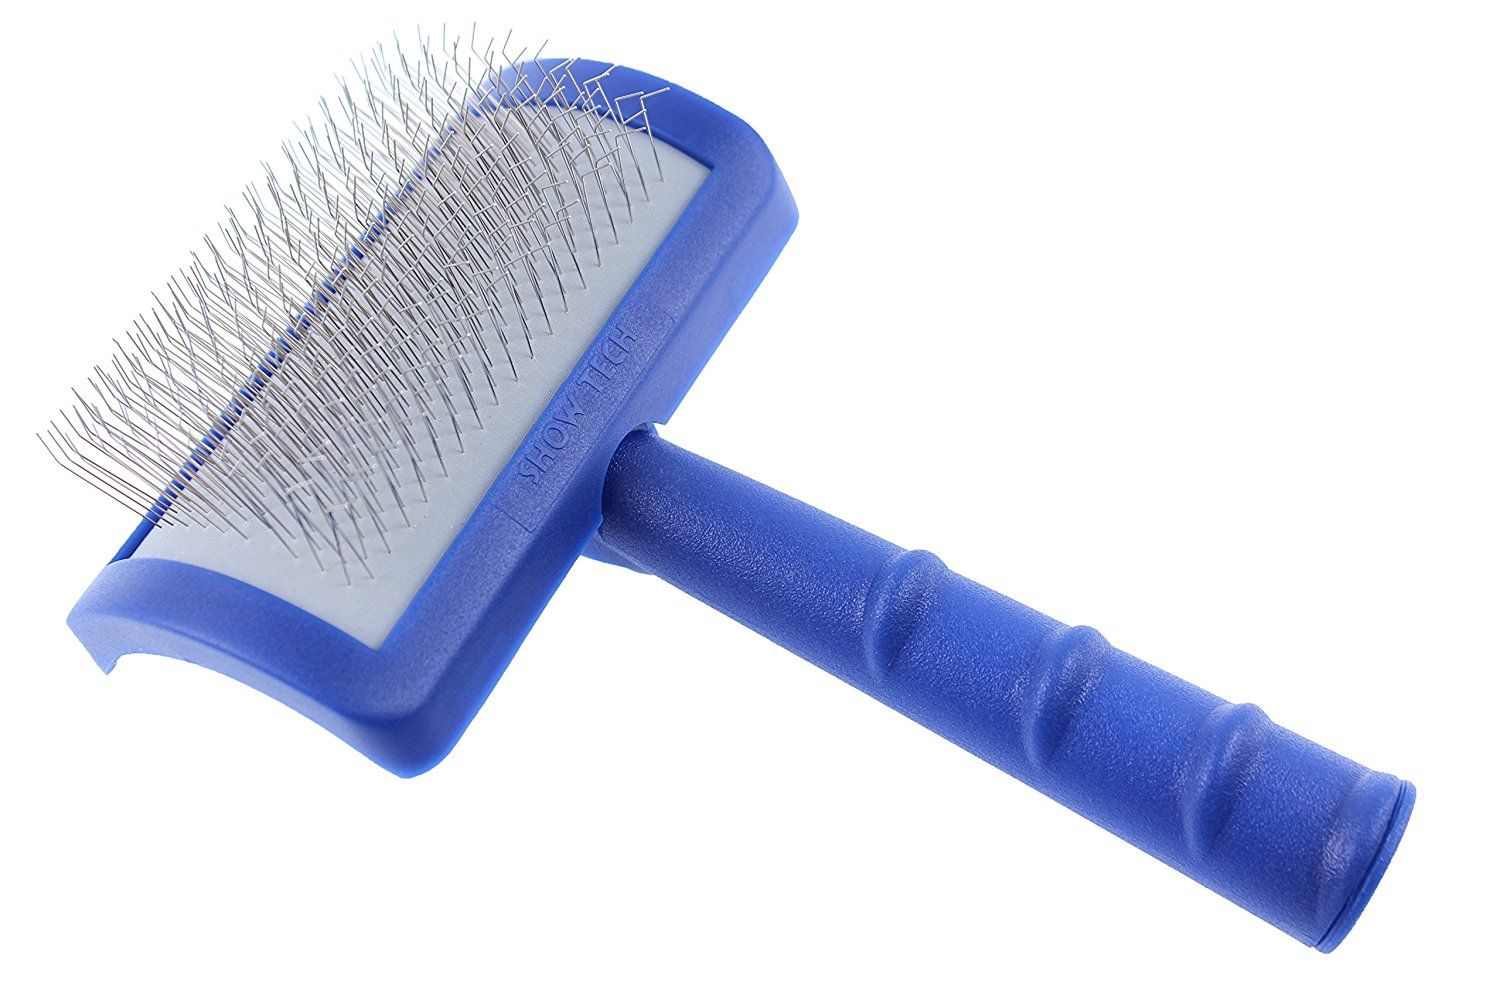 Dog and cat professional slicker brush for grooming with